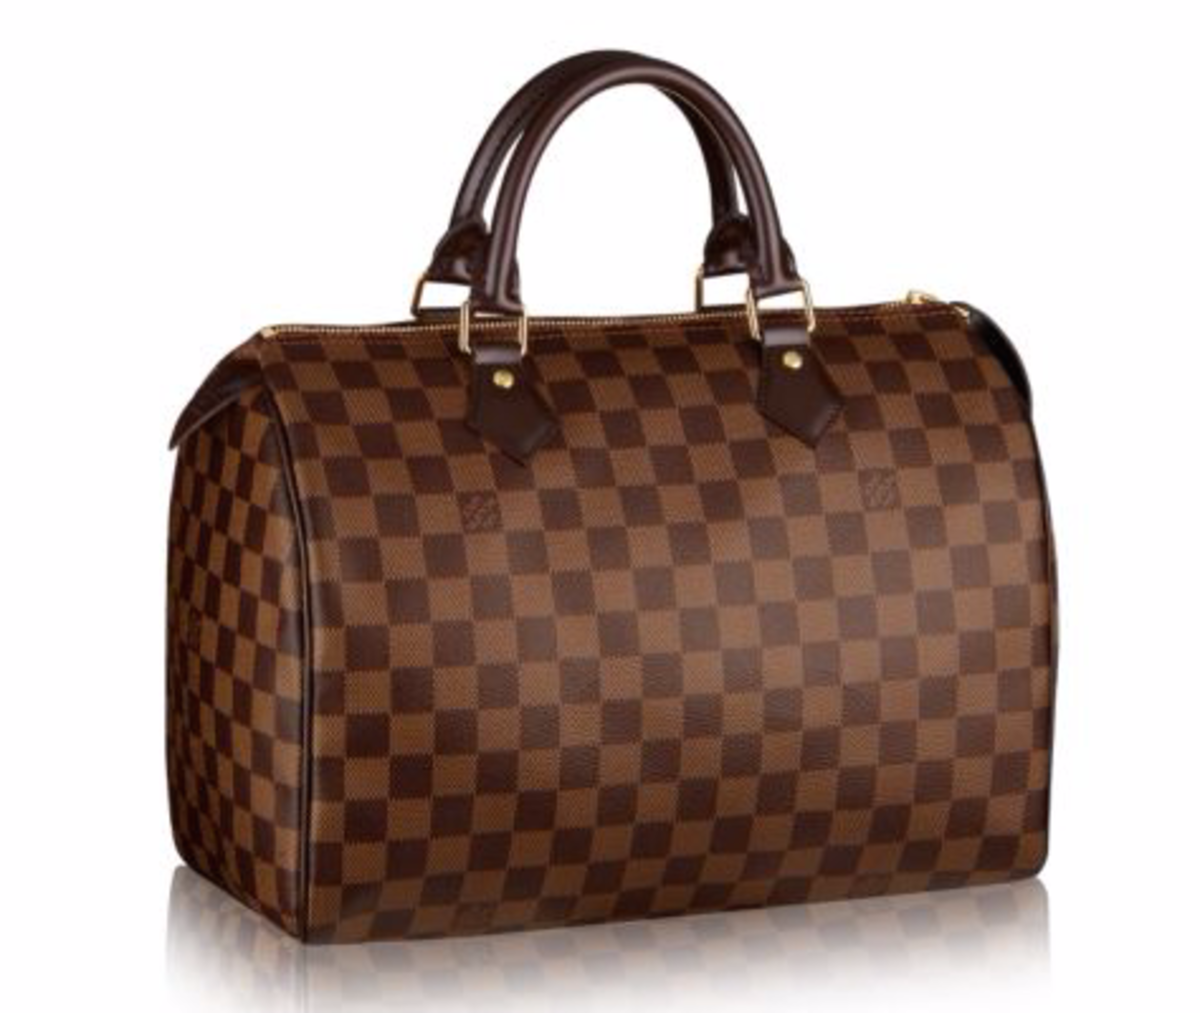 Louis Vuitton Fails to Win Back Trademark for Chequerboard Pattern ... 7700e2a799a7d